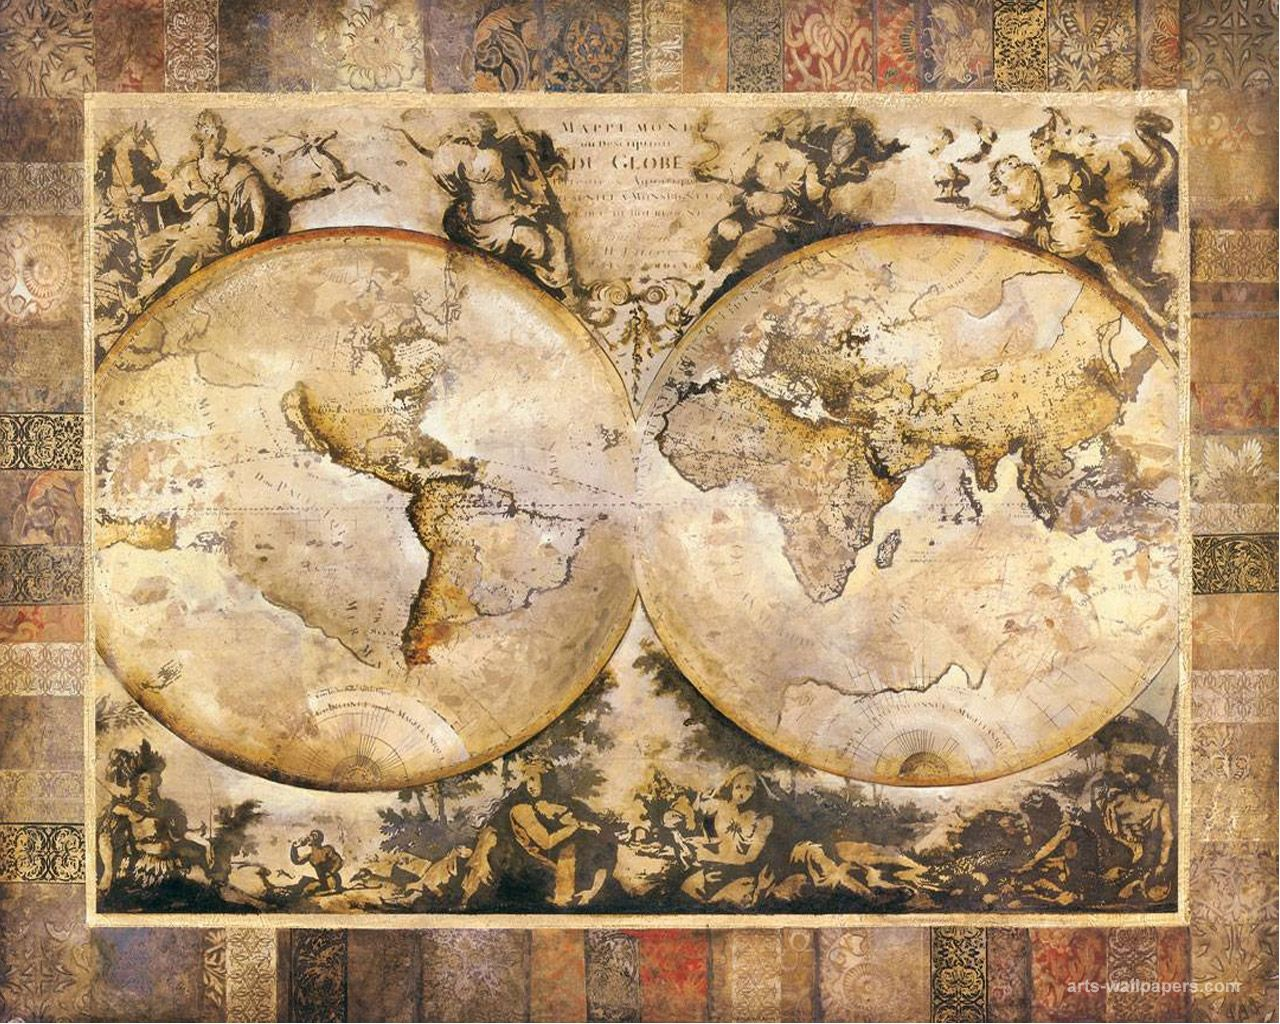 World antique map wallpaper art print poster art wallpapers pictures world antique map wallpaper art print poster art wallpapers pictures gumiabroncs Image collections